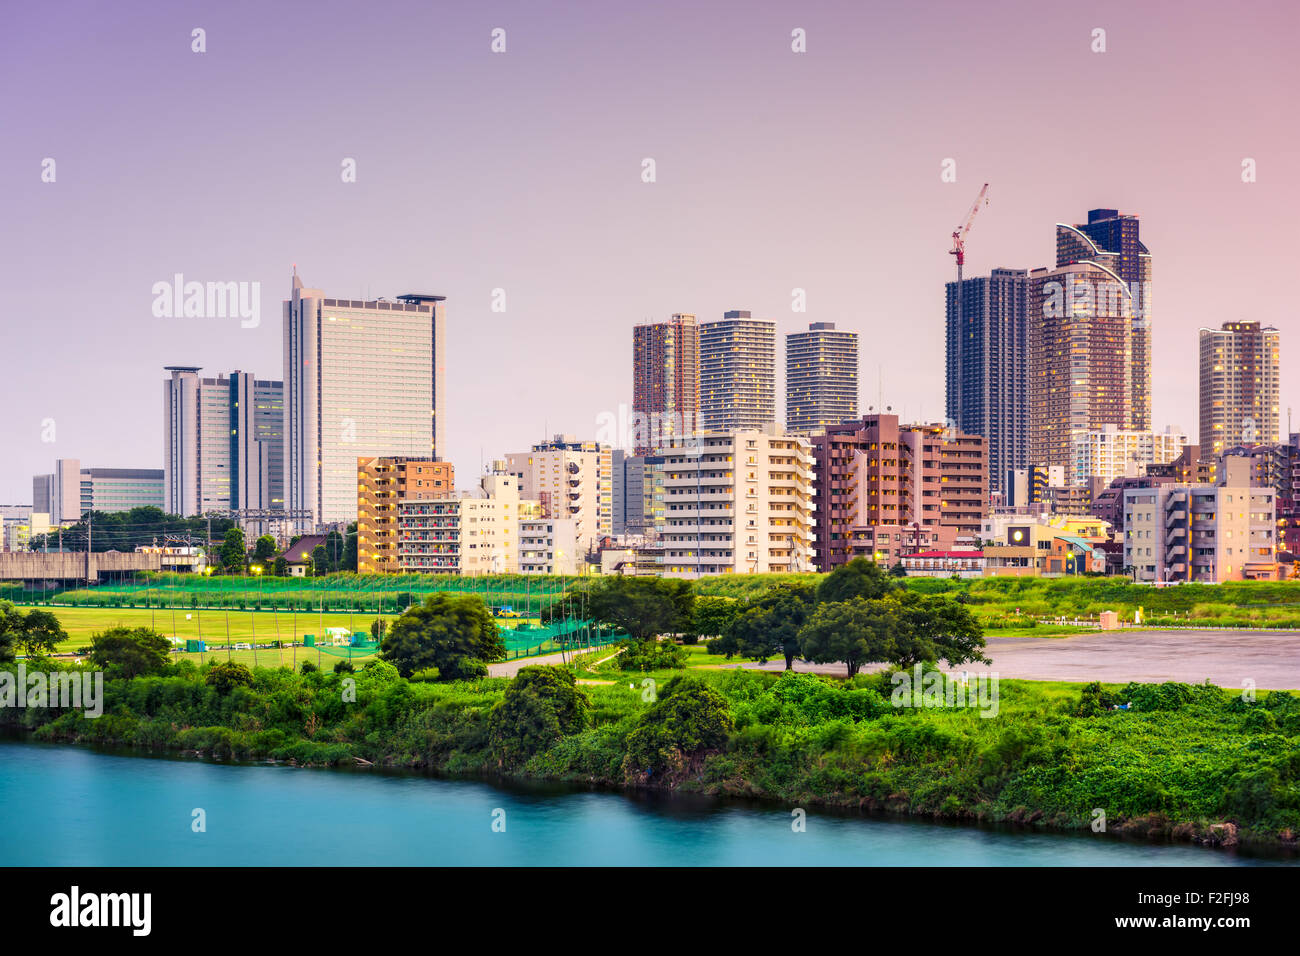 Kawasaki, Japan-Skyline am Fluss Tamagawa. Stockbild